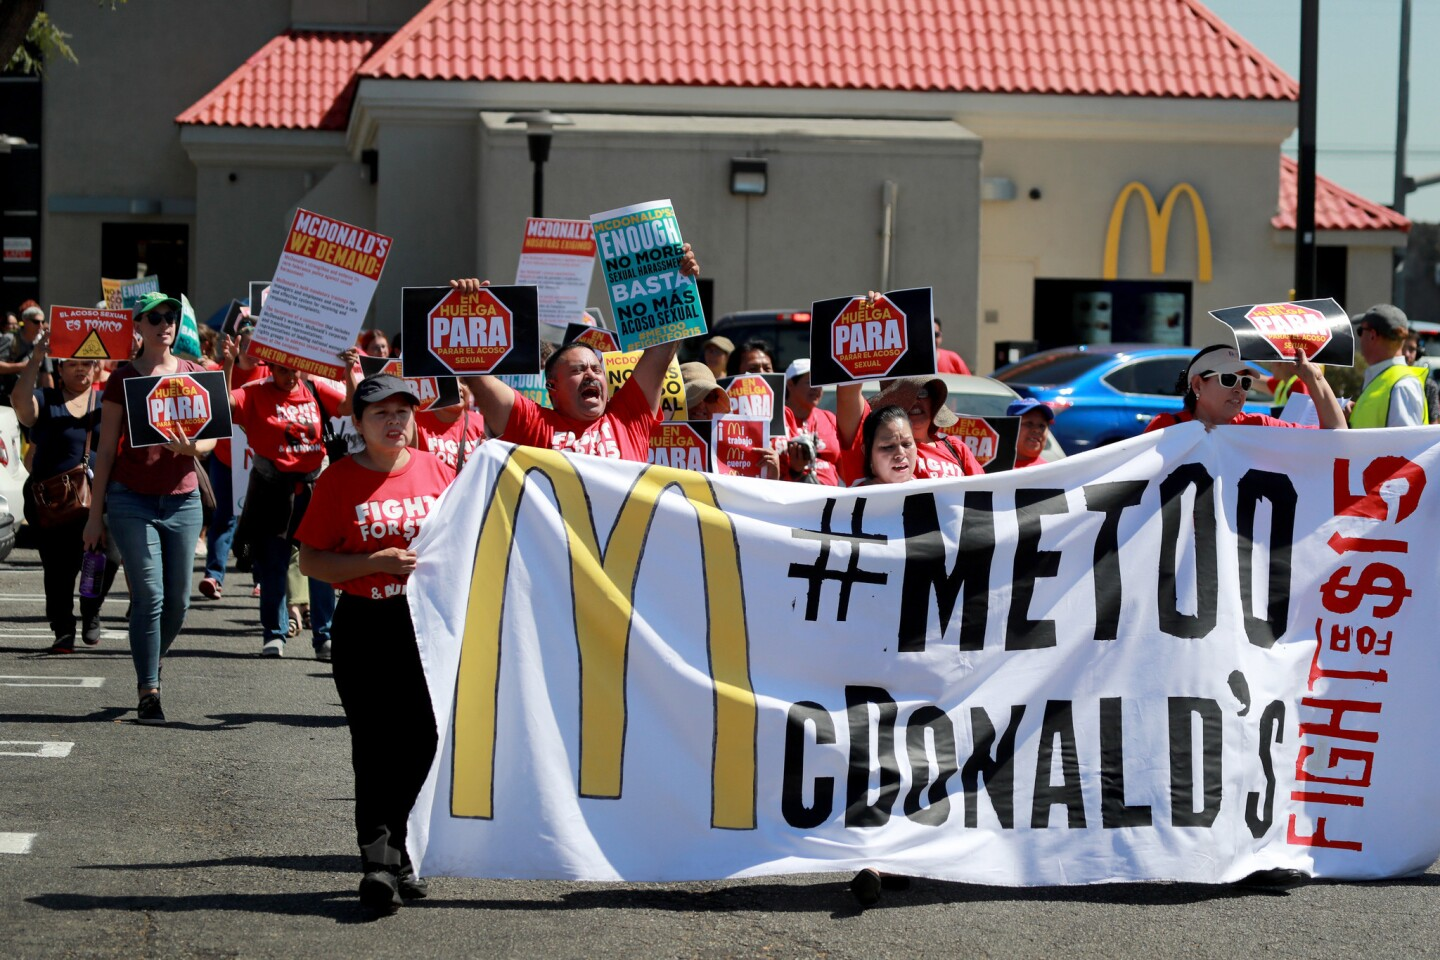 McDonald's workers, women's groups and civil rights groups stage a lunchtime strike at a South Los Angeles McDonald's to spotlight alleged sexual harassment throughout the fast-food giant's organizational culture as part of a 10-city protest.